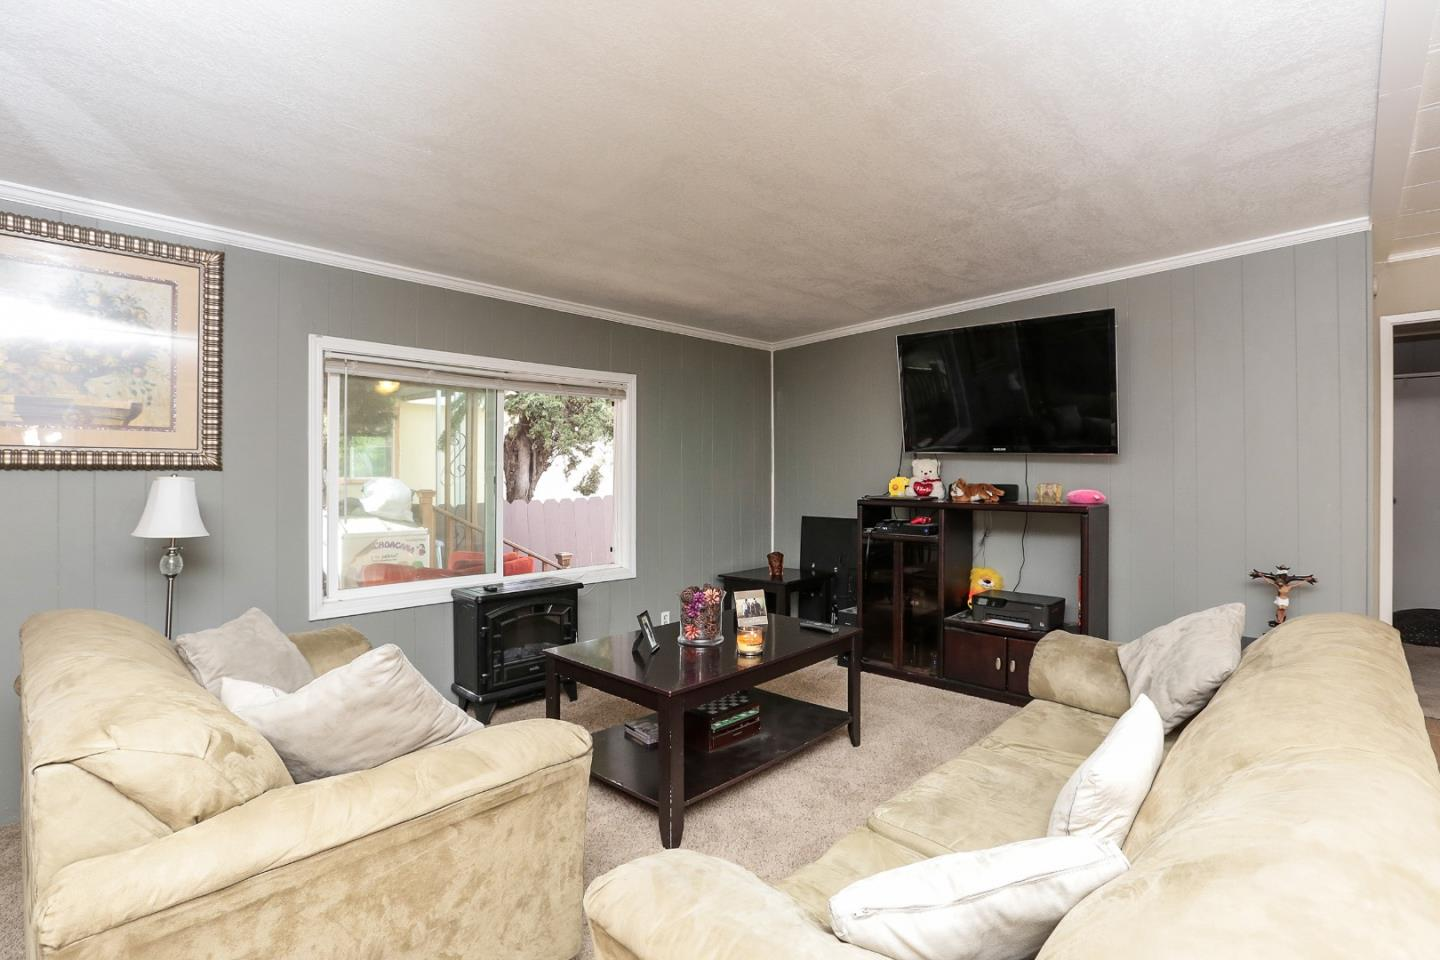 Additional photo for property listing at 200 Ford Road  San Jose, カリフォルニア 95138 アメリカ合衆国